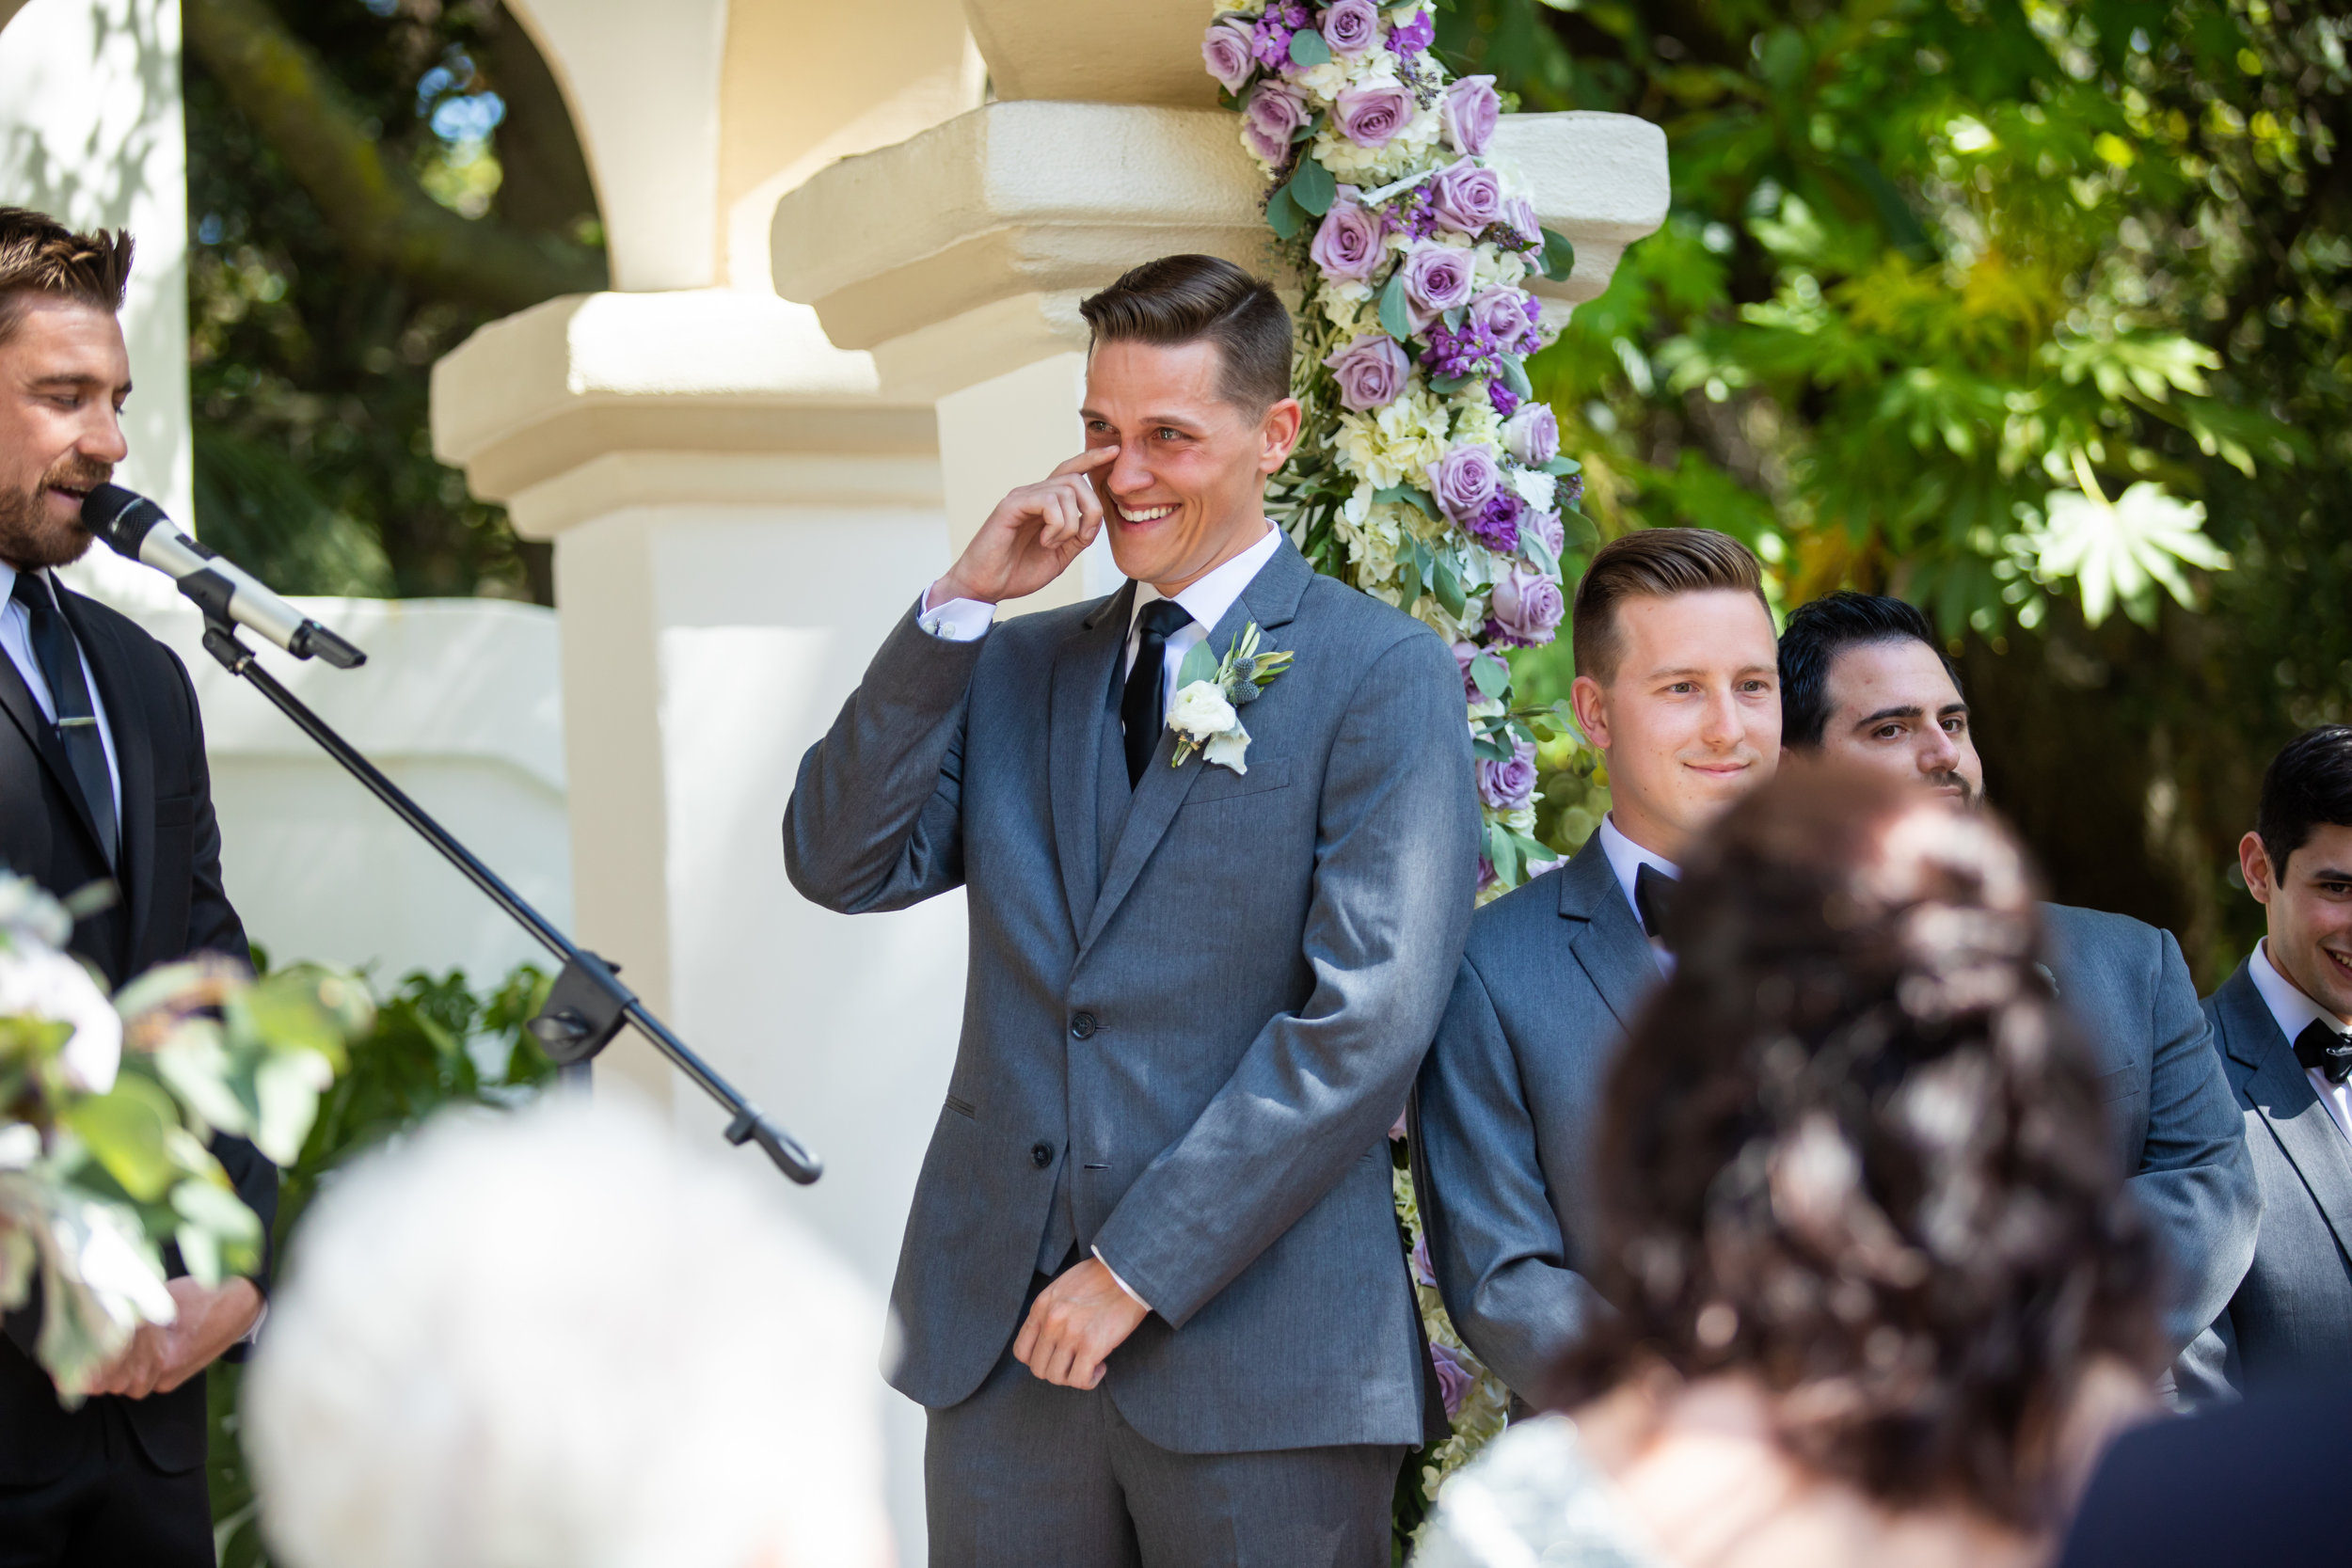 Taylor and Brenton - Ceremony-91.JPG